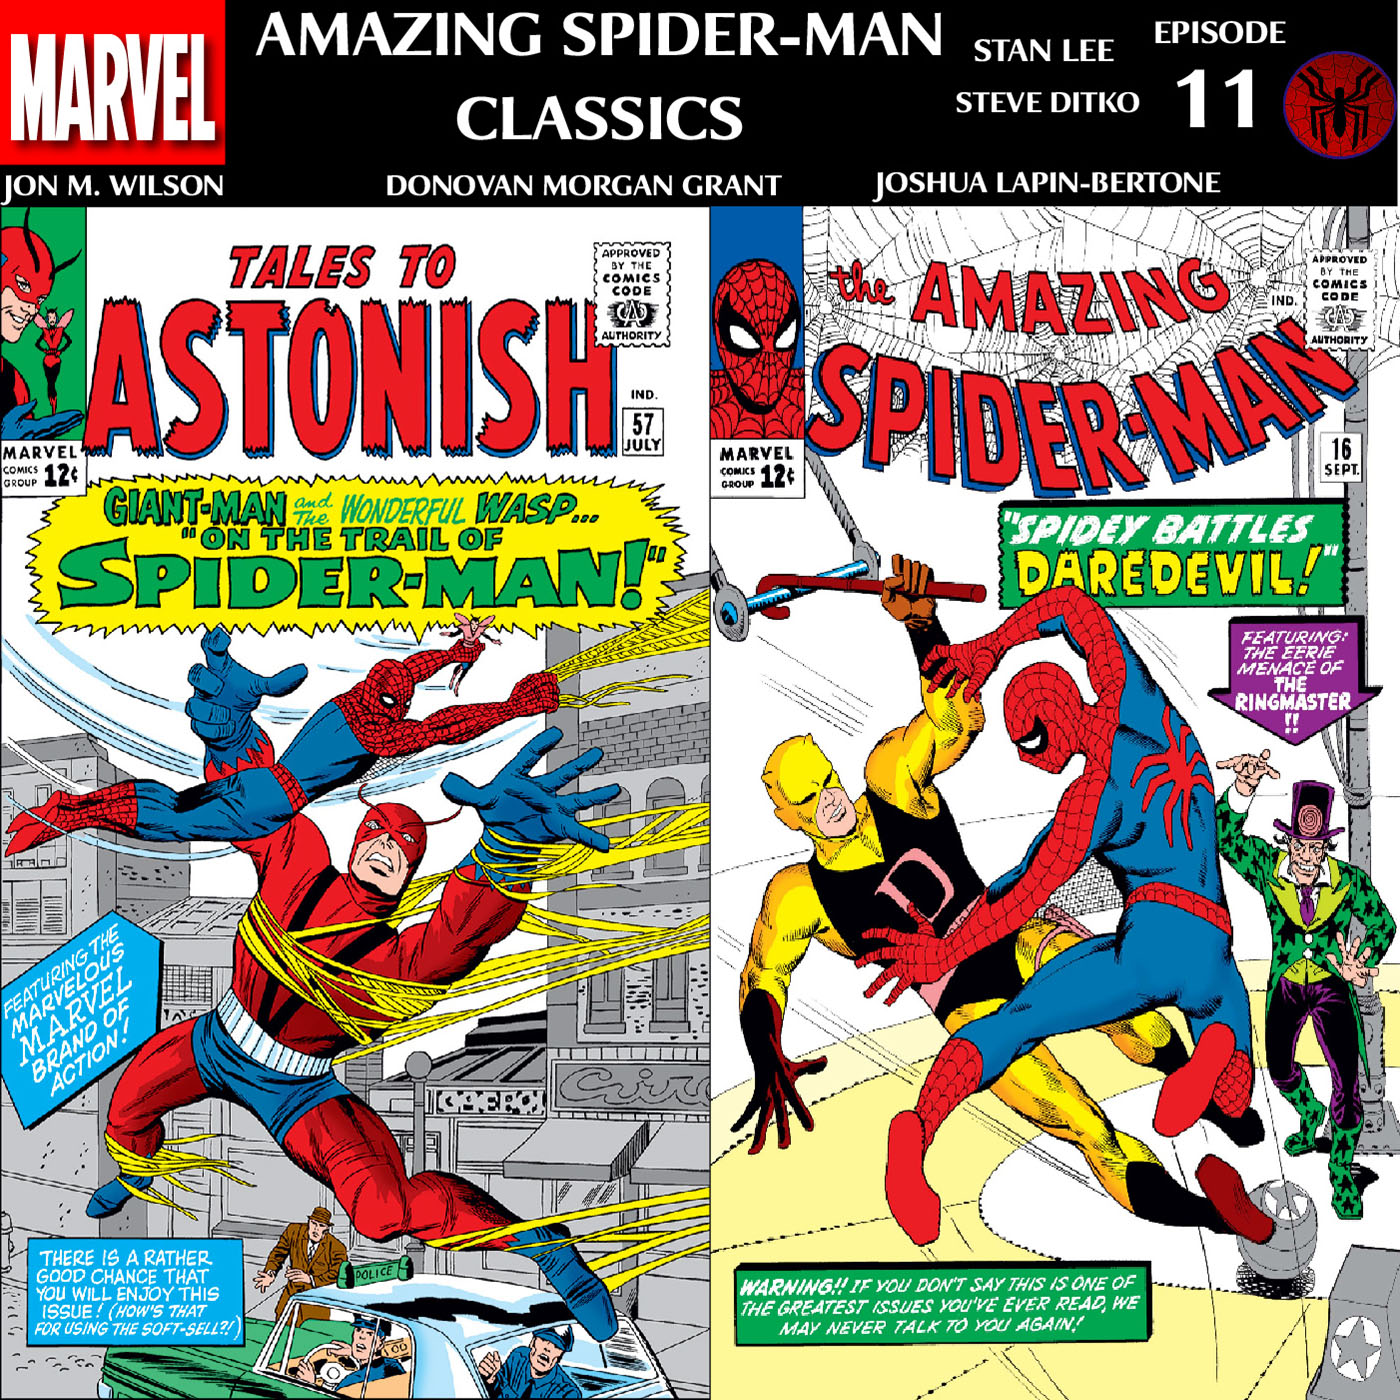 ASM Classics Episode 11: ASM 16 & Tales to Astonish 57